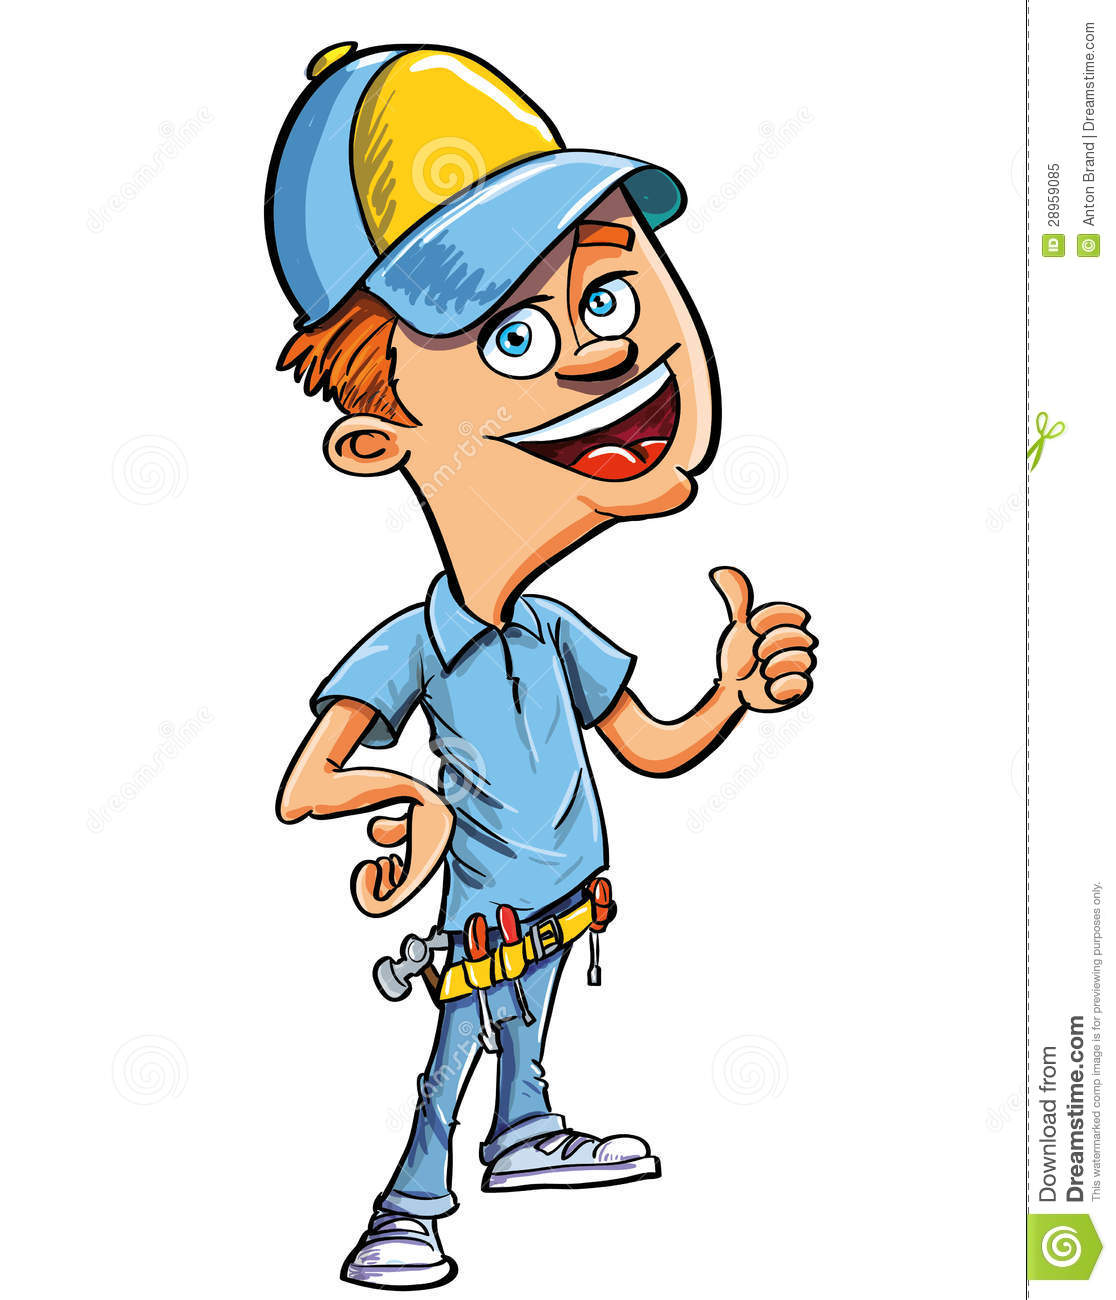 Cartoon Handyman Giving A Thumbs Up Royalty Free Stock